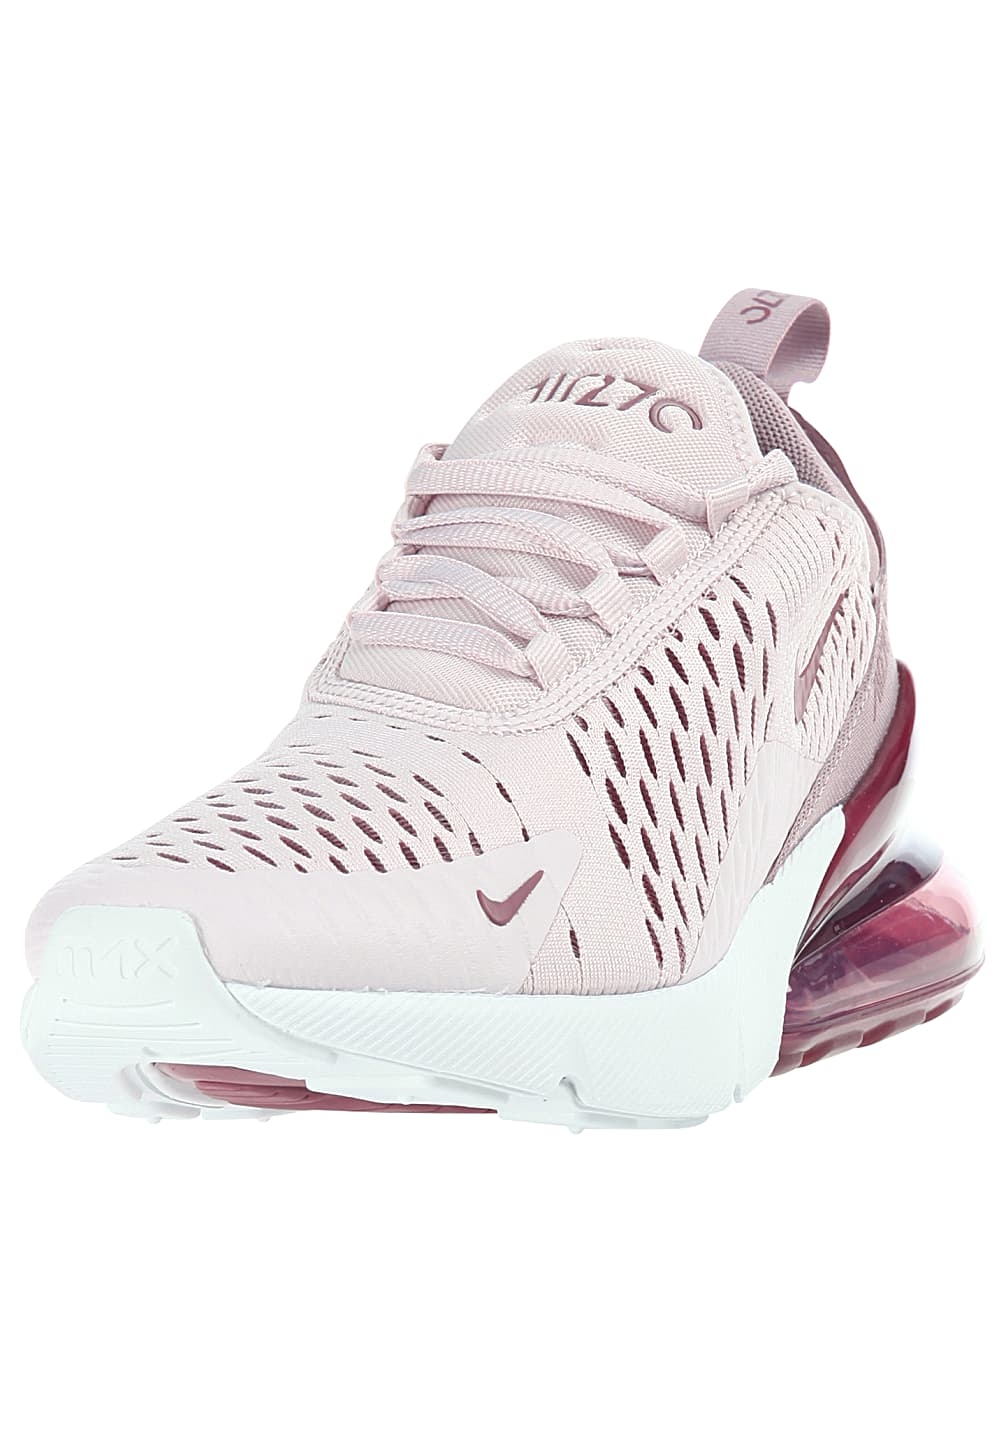 cheap for discount 7d8ab f37ce NIKE SPORTSWEAR Air Max 270 - Sneakers for Women - Pink